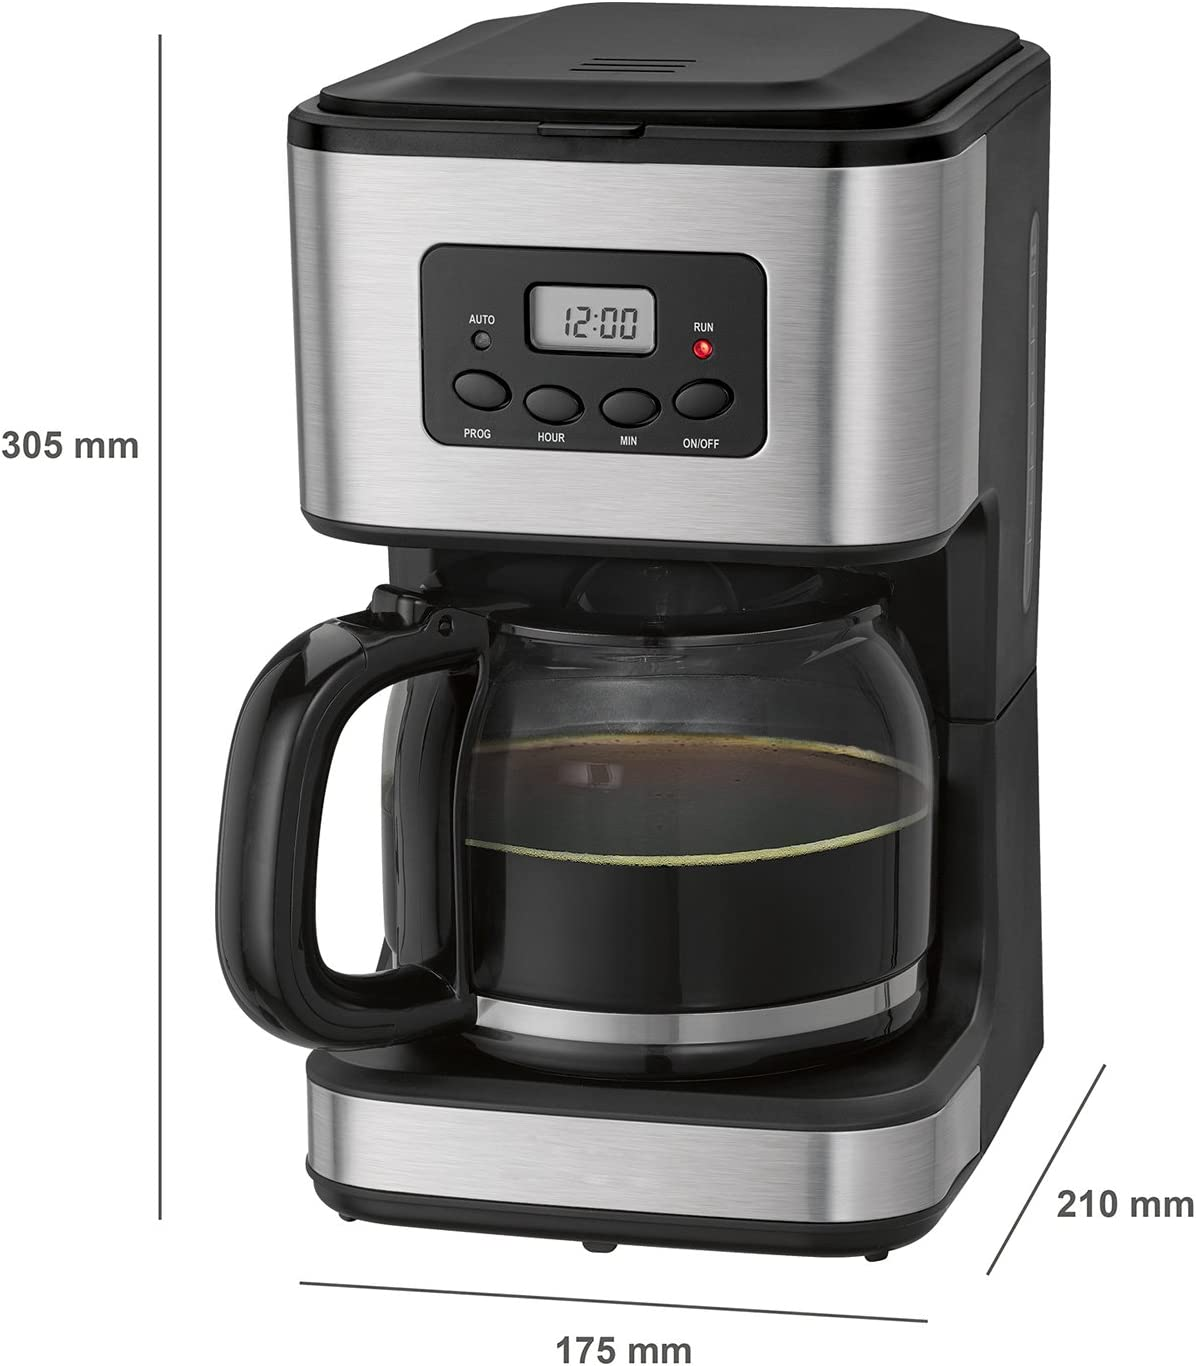 briebe Cafetera programable eléctrica de Goteo automática, máquina café de Filtro Capacidad 12 a 14 Tazas, 1,5 litros, Display Digital Hora 24h/Temporizador, 900 W, Color Negro Acero Inoxidable: Amazon.es: Hogar